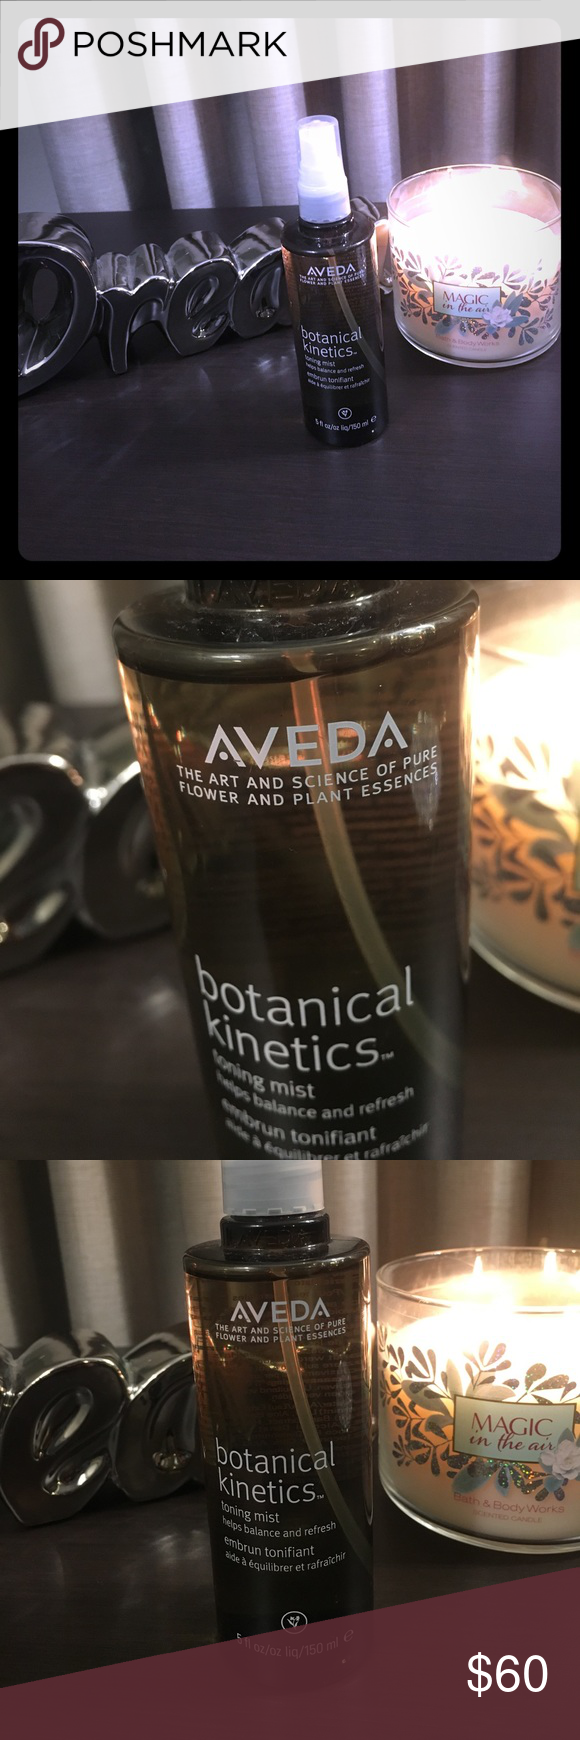 Aveda toning mist Aveda toning mist botanical kinetics. Leading brand in skin care products. Used once or twice. I don't need that expensive of a toning mist. Aveda Other